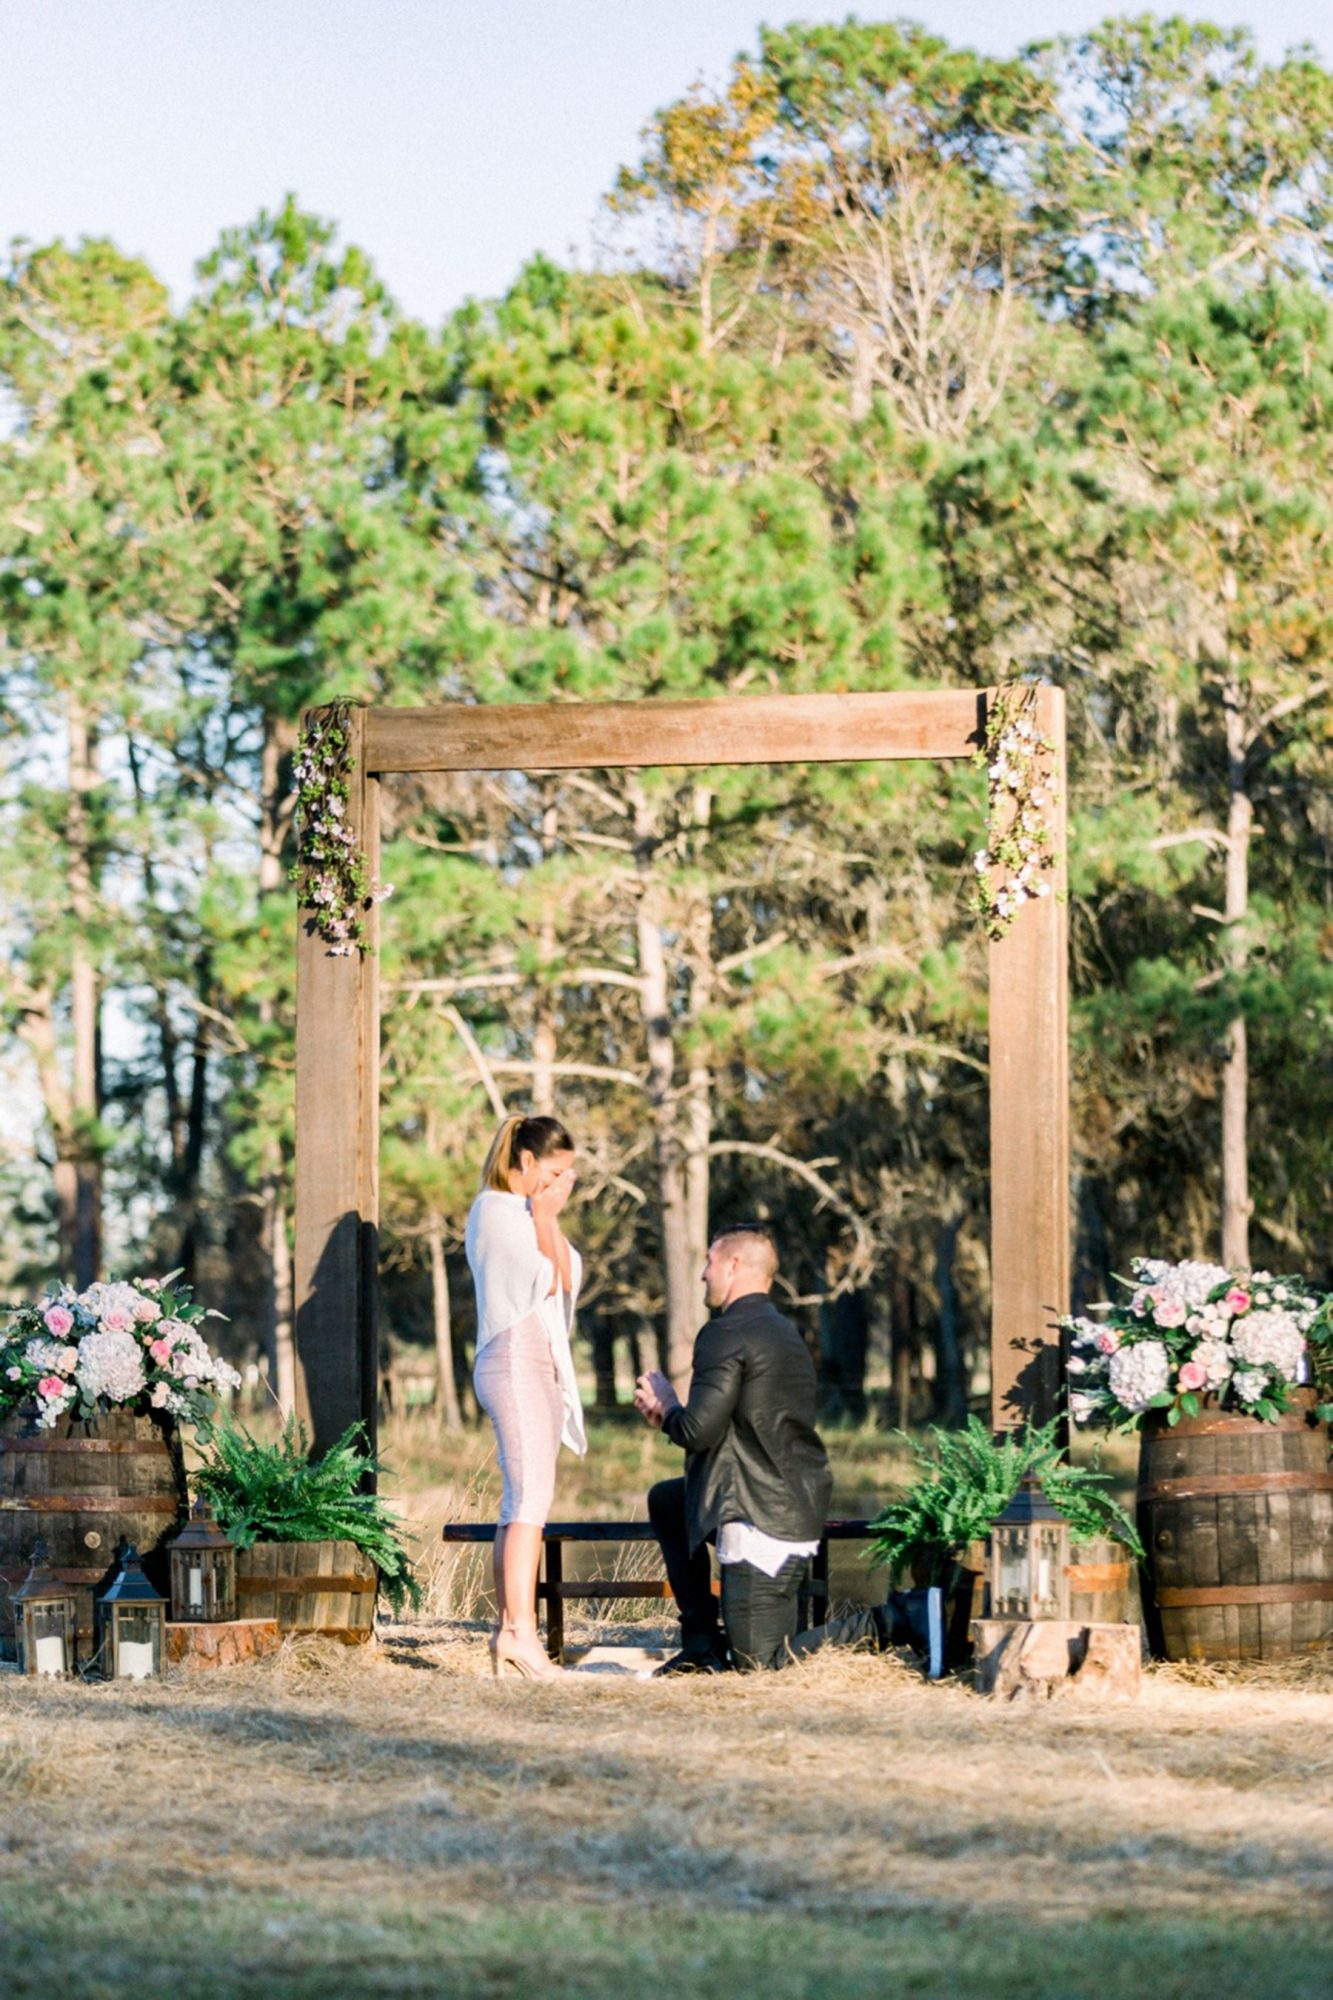 """The former NFL quarterback raised the bar on a millennial trend when he whisked Demi-Leigh Nel-Peters to his family's Florida farm and slipped a 7.25-carat solitaire ring on her finger. Then singer Mathew Mole stepped out from behind a bale of hay to serenade the couple with """"The Wedding Song."""""""